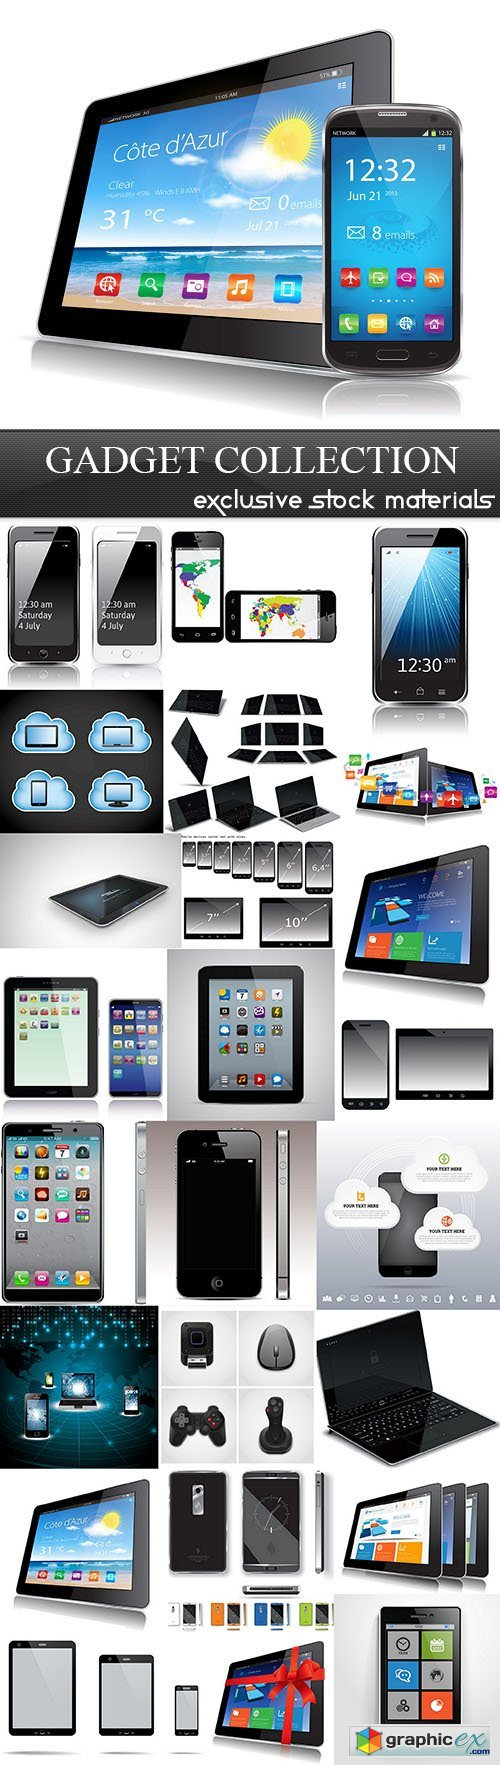 Gadget Collection, 25xEPS